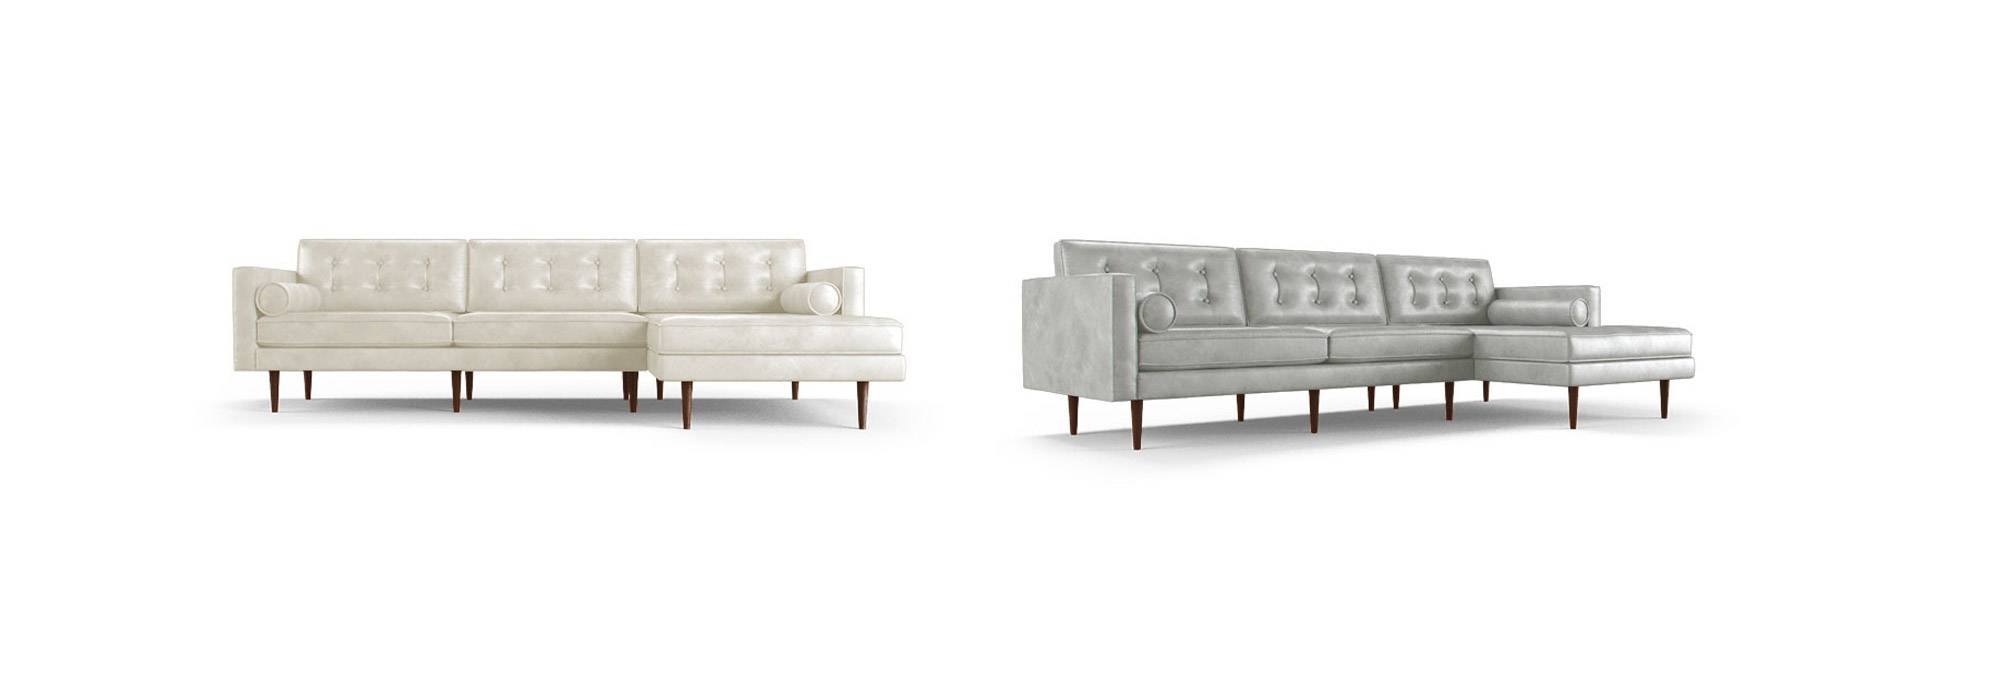 Braxton Leather Sectional | Joybird in Braxton Sectional Sofa (Image 4 of 30)